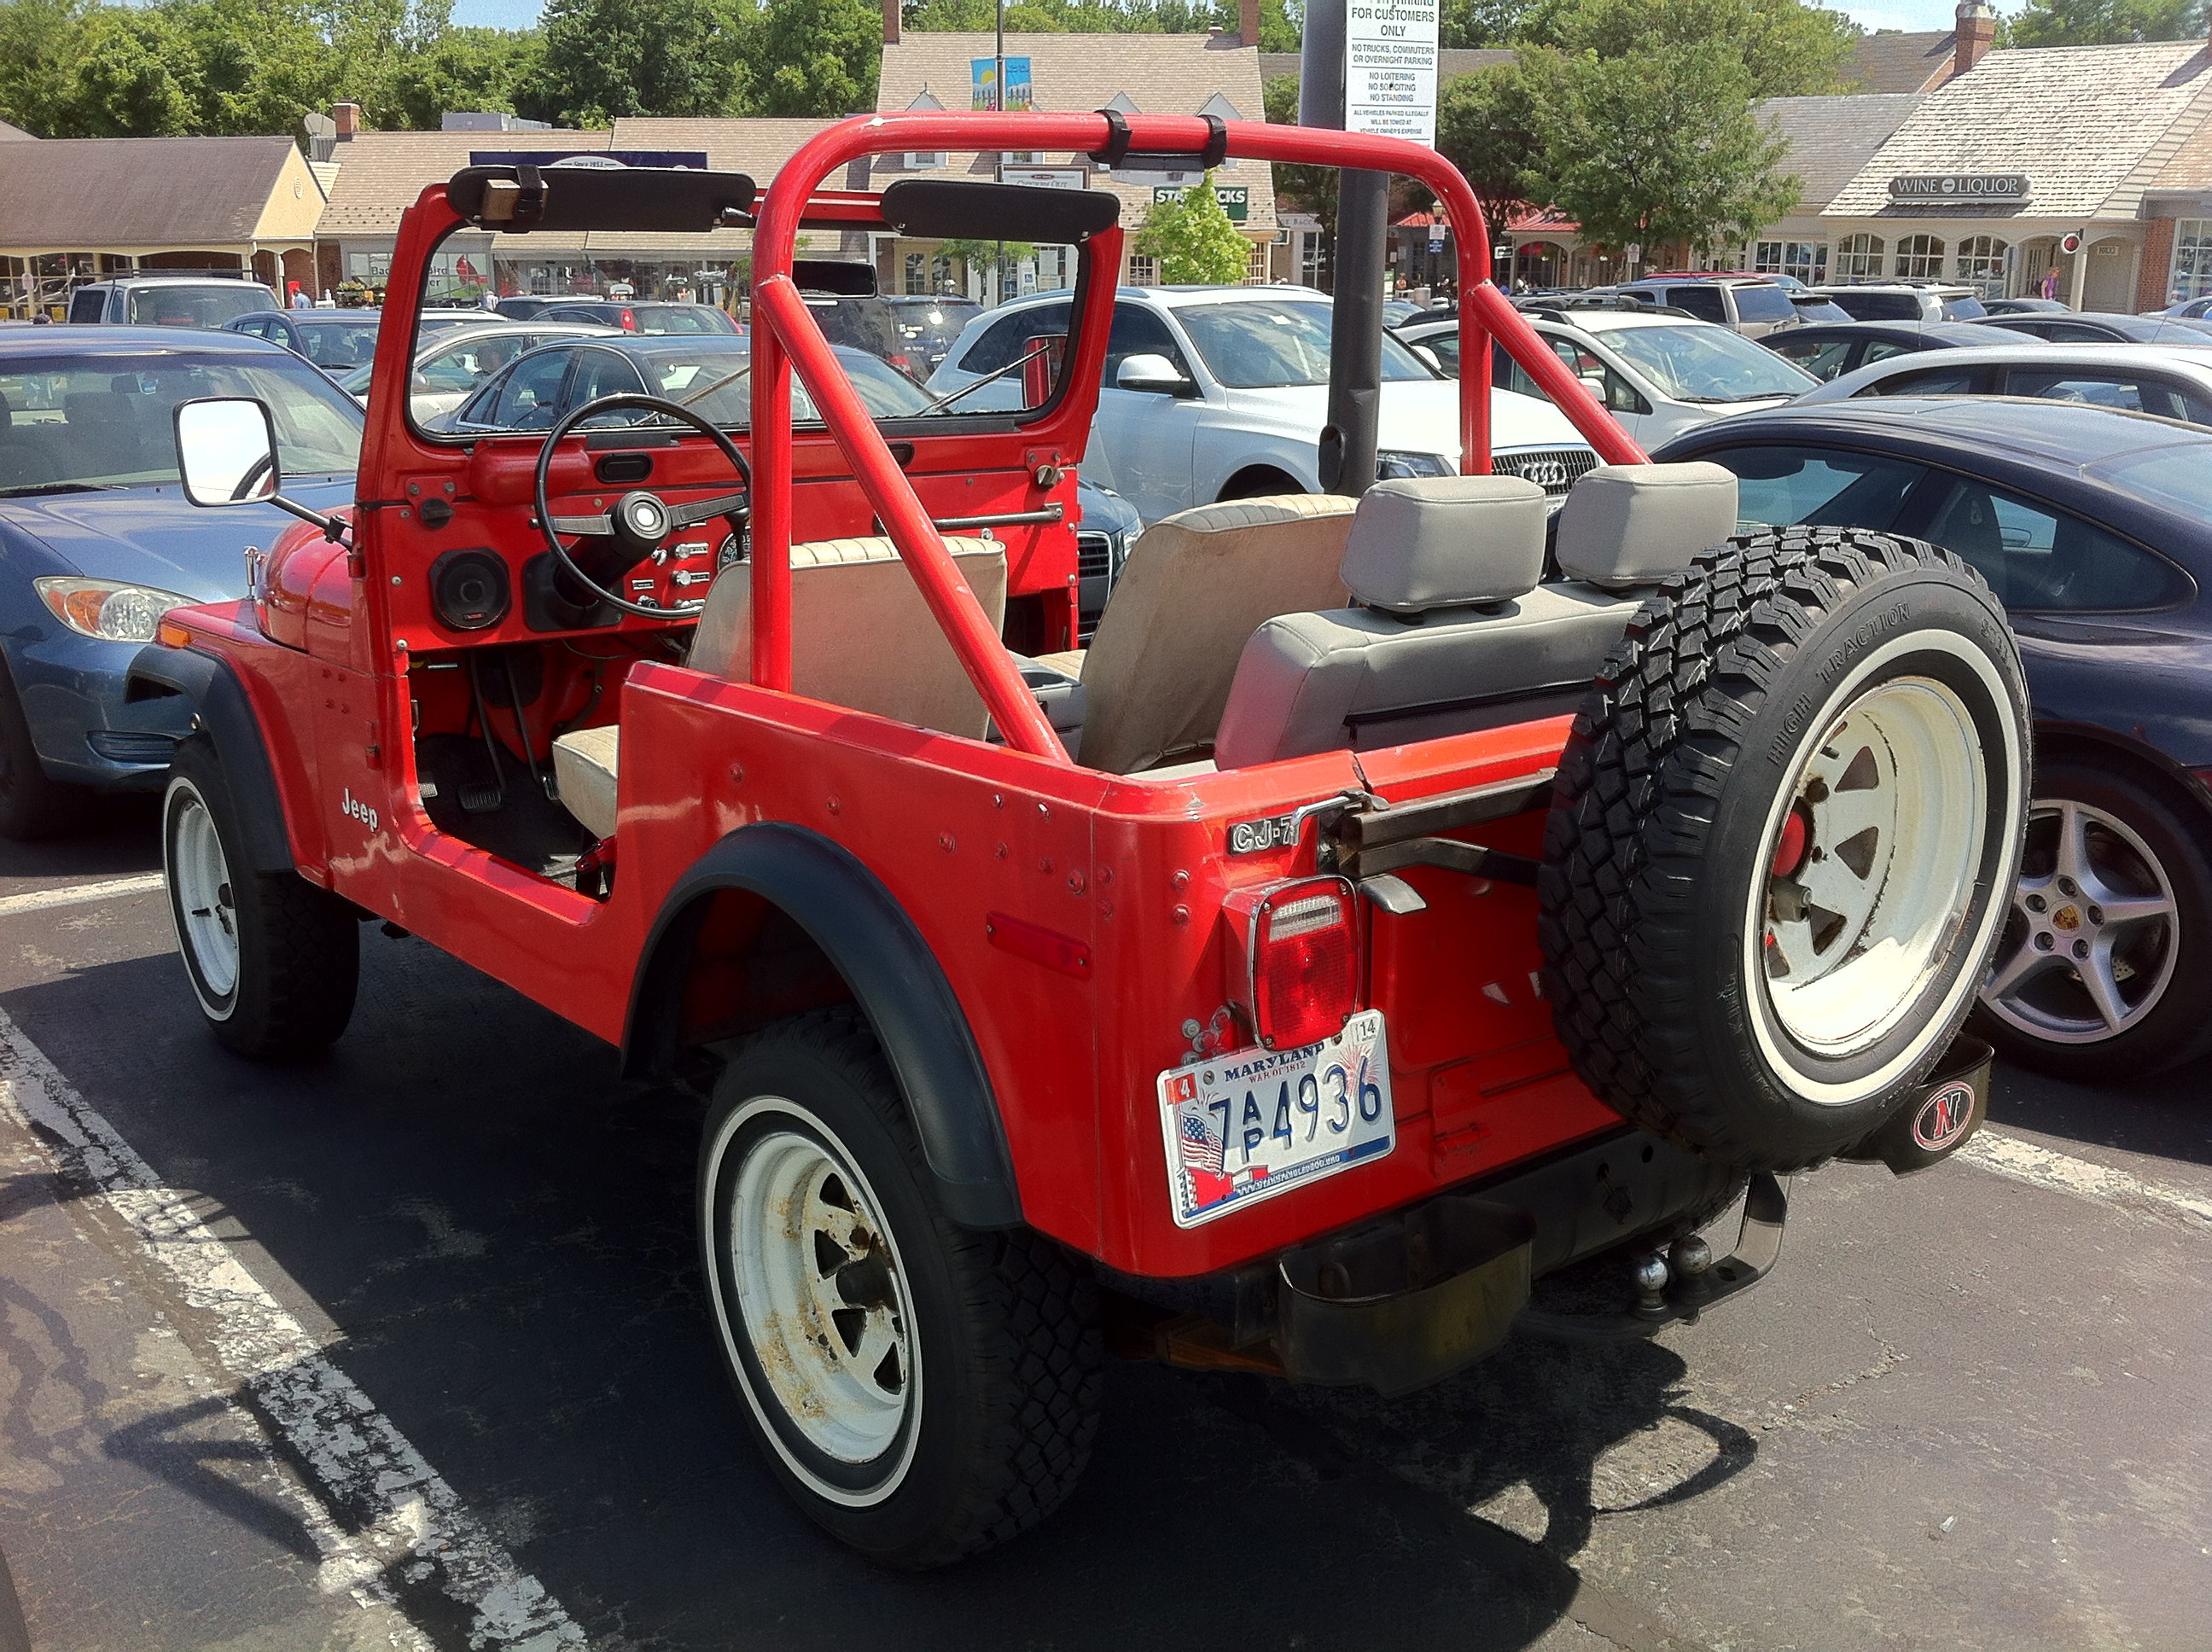 Watch furthermore 7q3qu Wrangler Unlimited Front Seat Won T Recline additionally Is It True Is The Jeep Wrangler The Last Cheap Four Seat Convertible On The Market in addition Rubicon Police Car W Officer together with Cargo dimensions. on jeep wrangler back seat